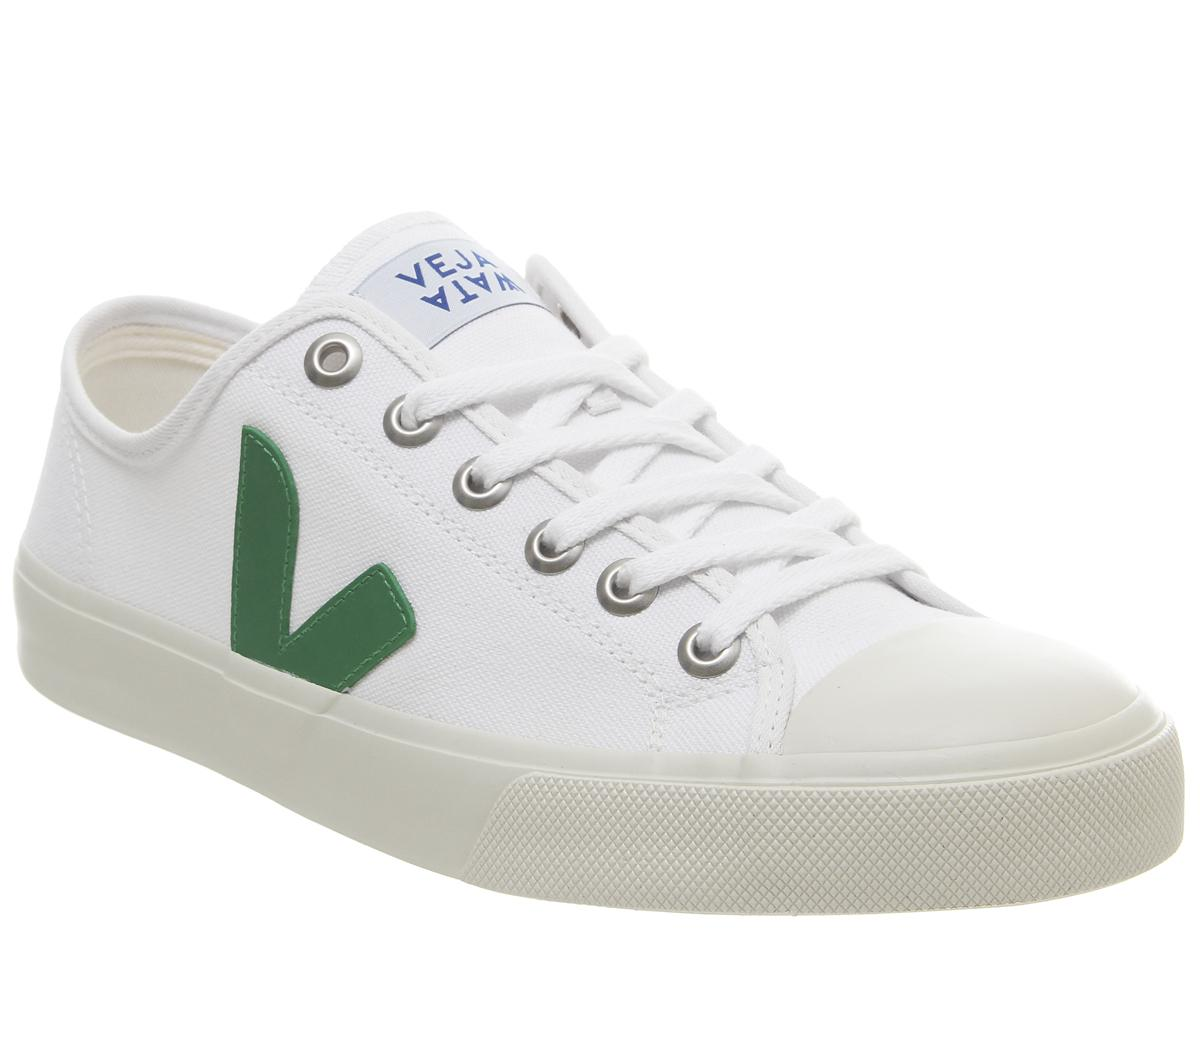 Veja Wata Trainers White Green - His